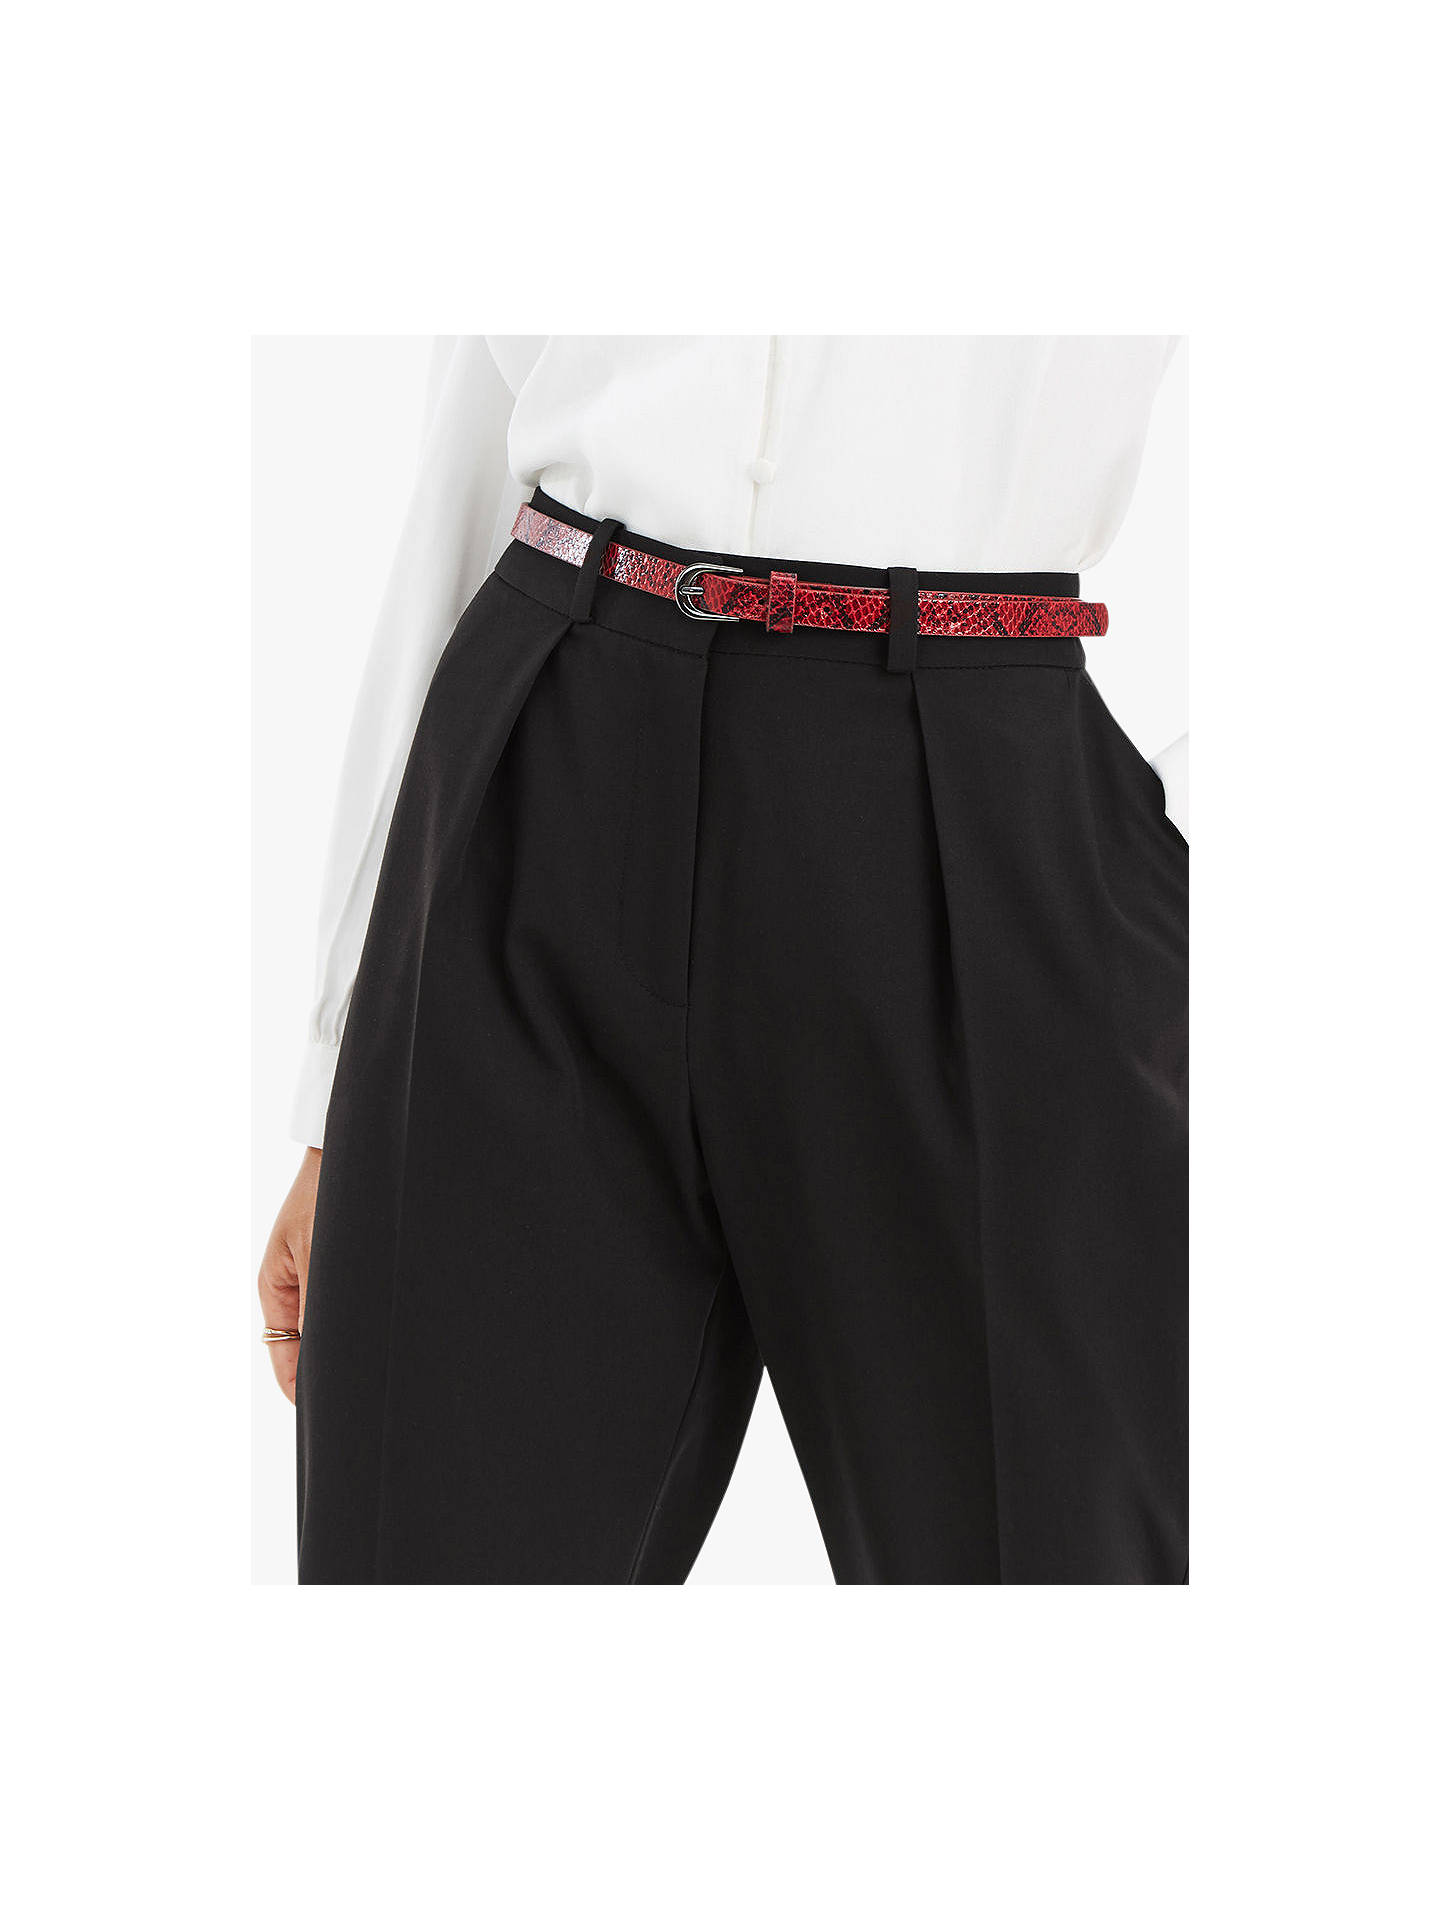 BuyOasis Belted Peg Trousers, Black, 12R Online at johnlewis.com